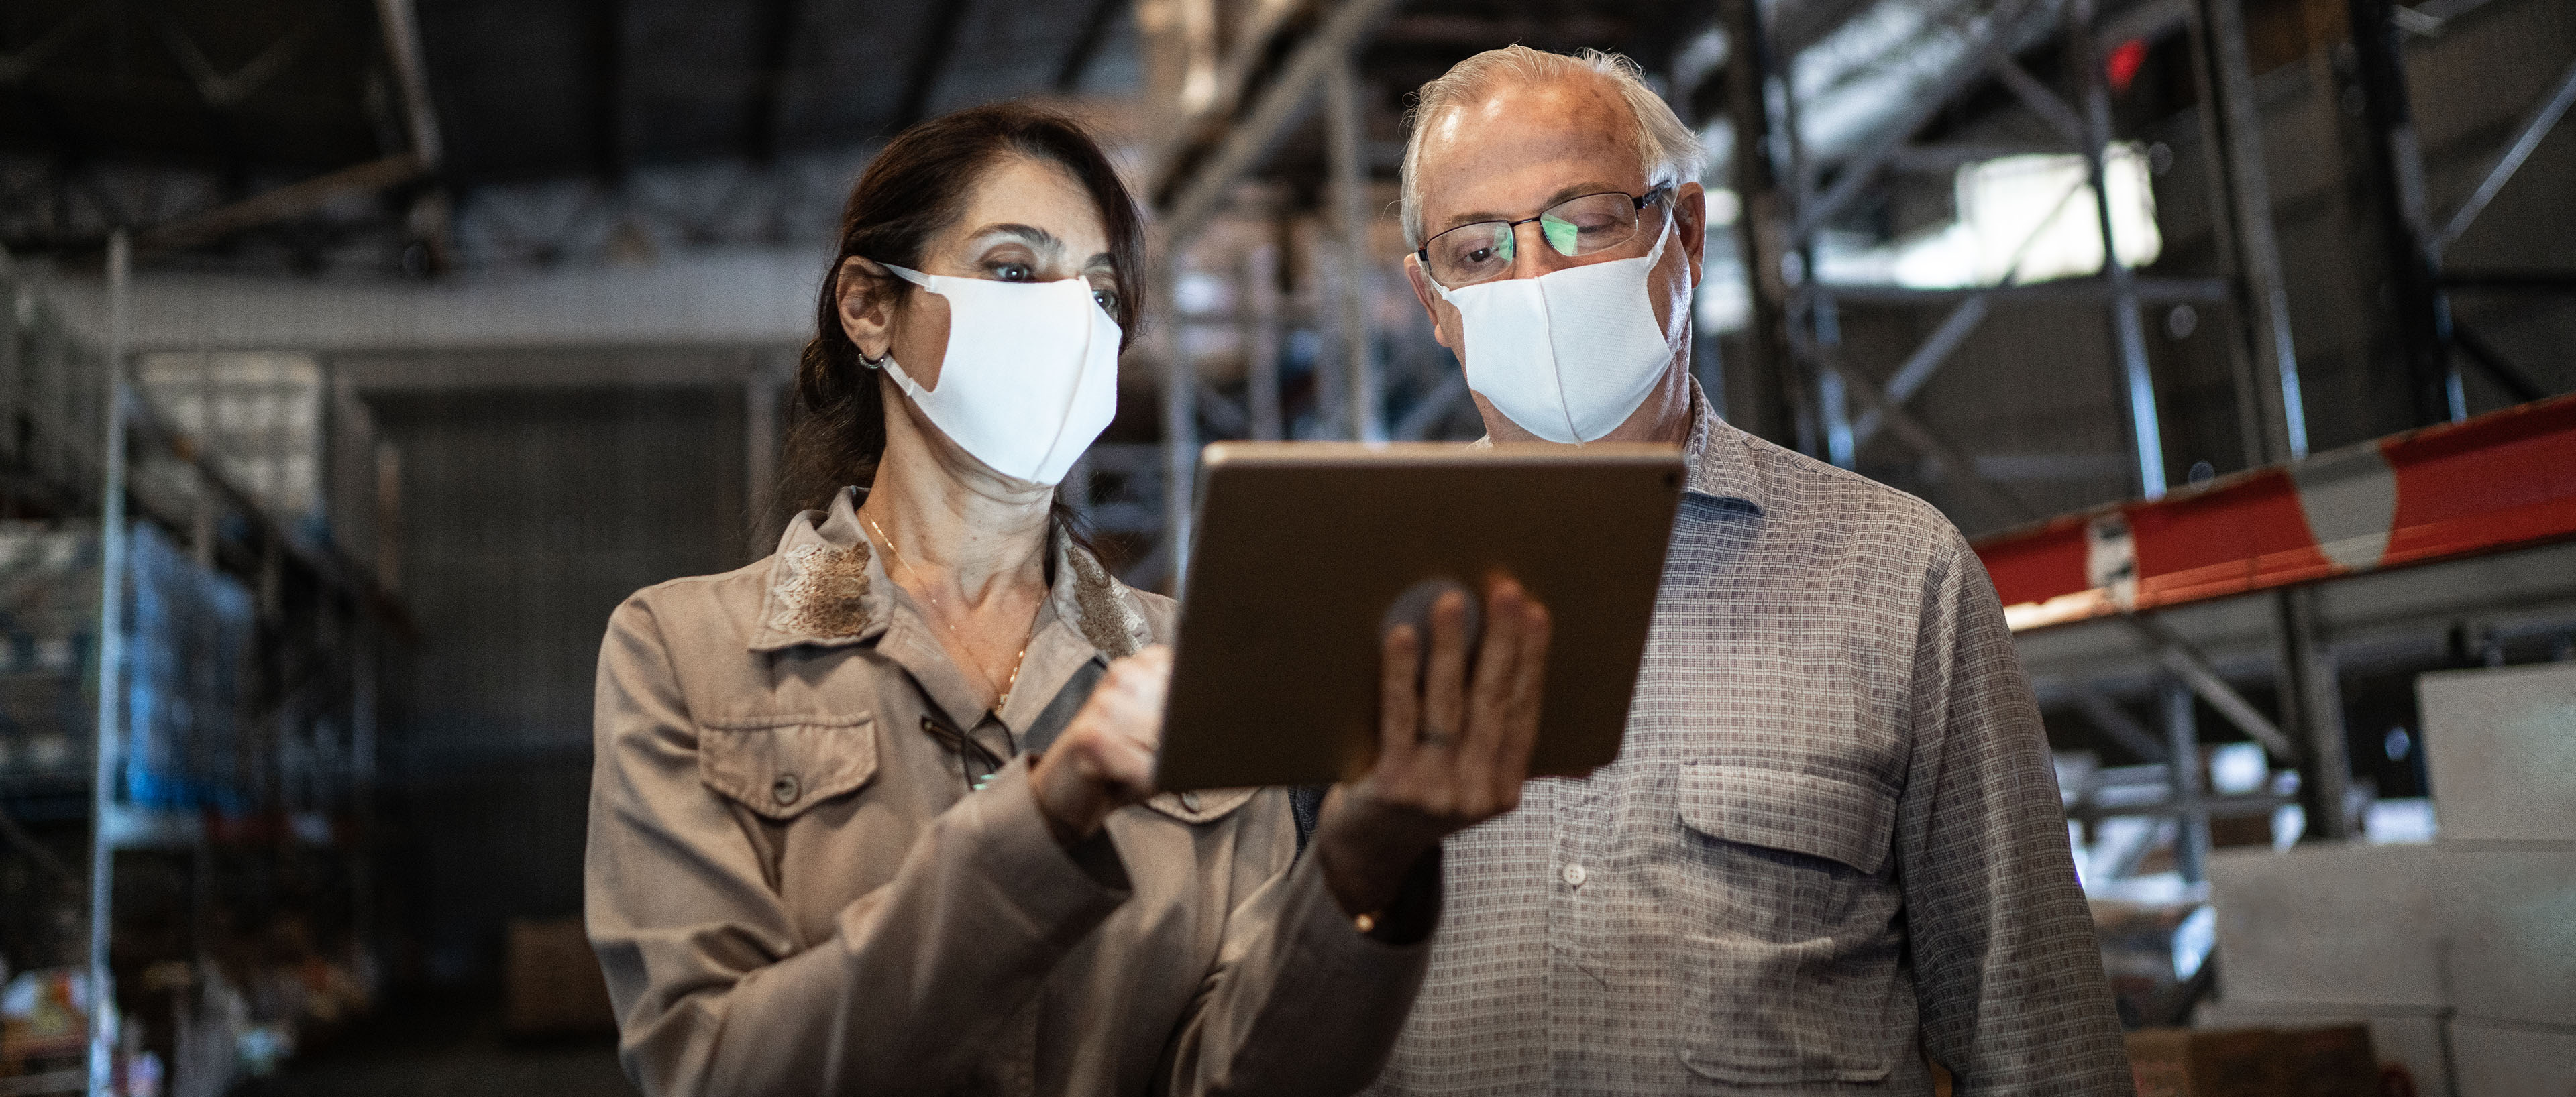 Man and woman using digital tablet in warehouse wearing masks